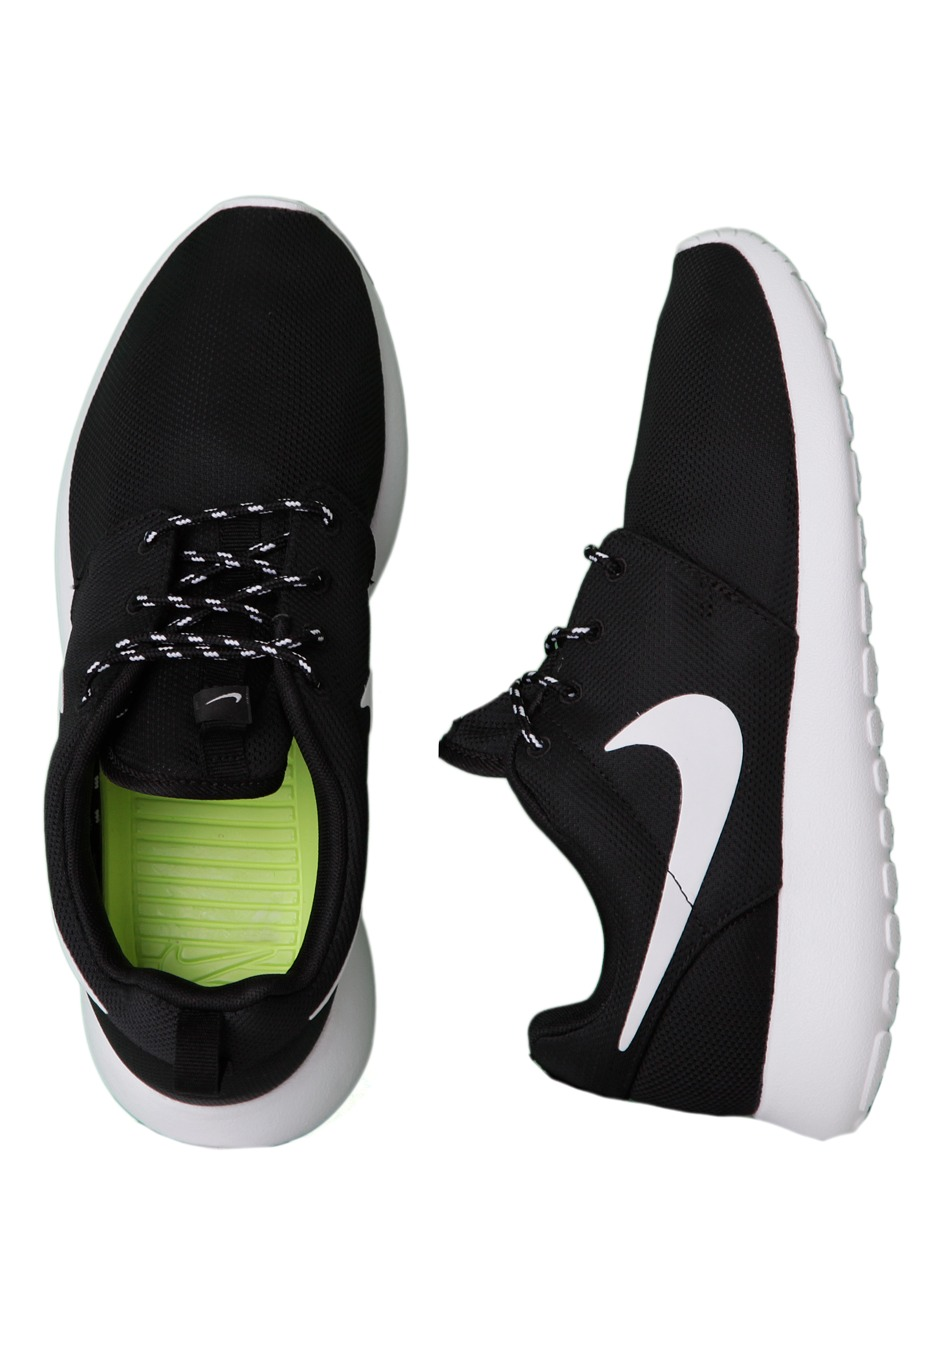 1e5f7d62453ed Nike Roshe Run Women Black And White Volt extreme-hosting.co.uk